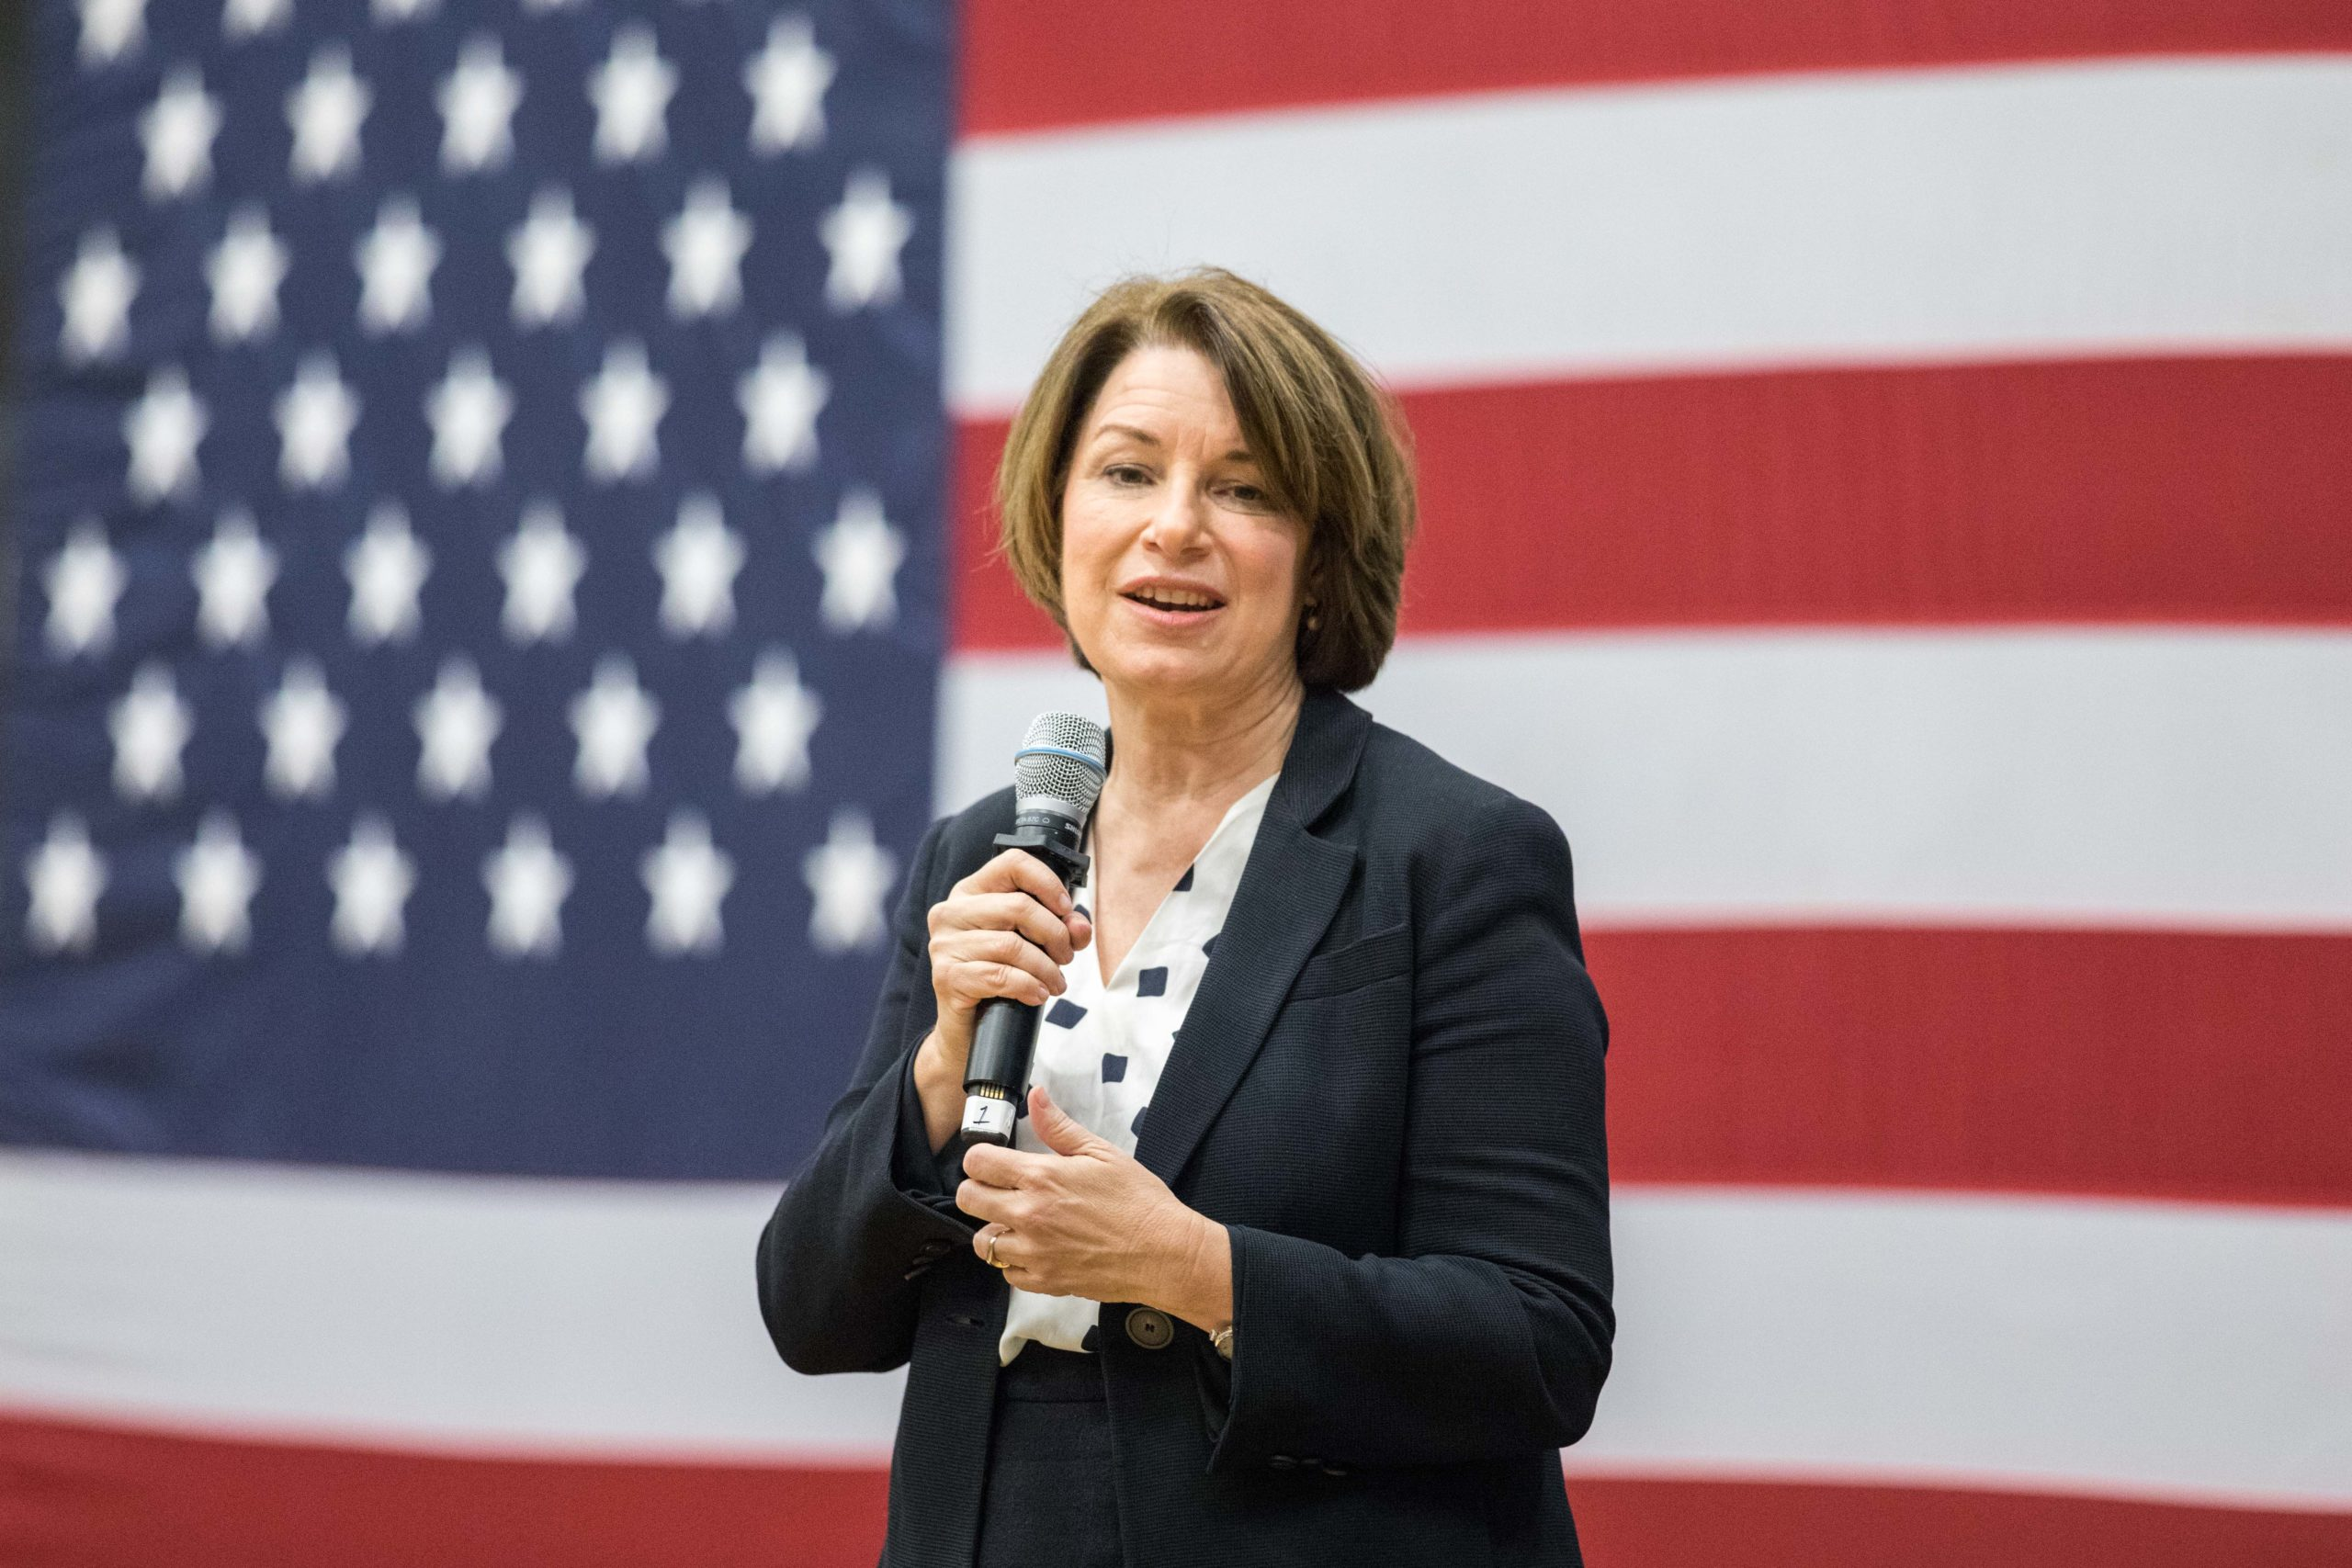 Democratic presidential candidate Sen. Amy Klobuchar (D-MN) speaks during a town hall at Nashua Community College on October 25, 2019 in Nashua, New Hampshire. (Photo by Scott Eisen/Getty Images)